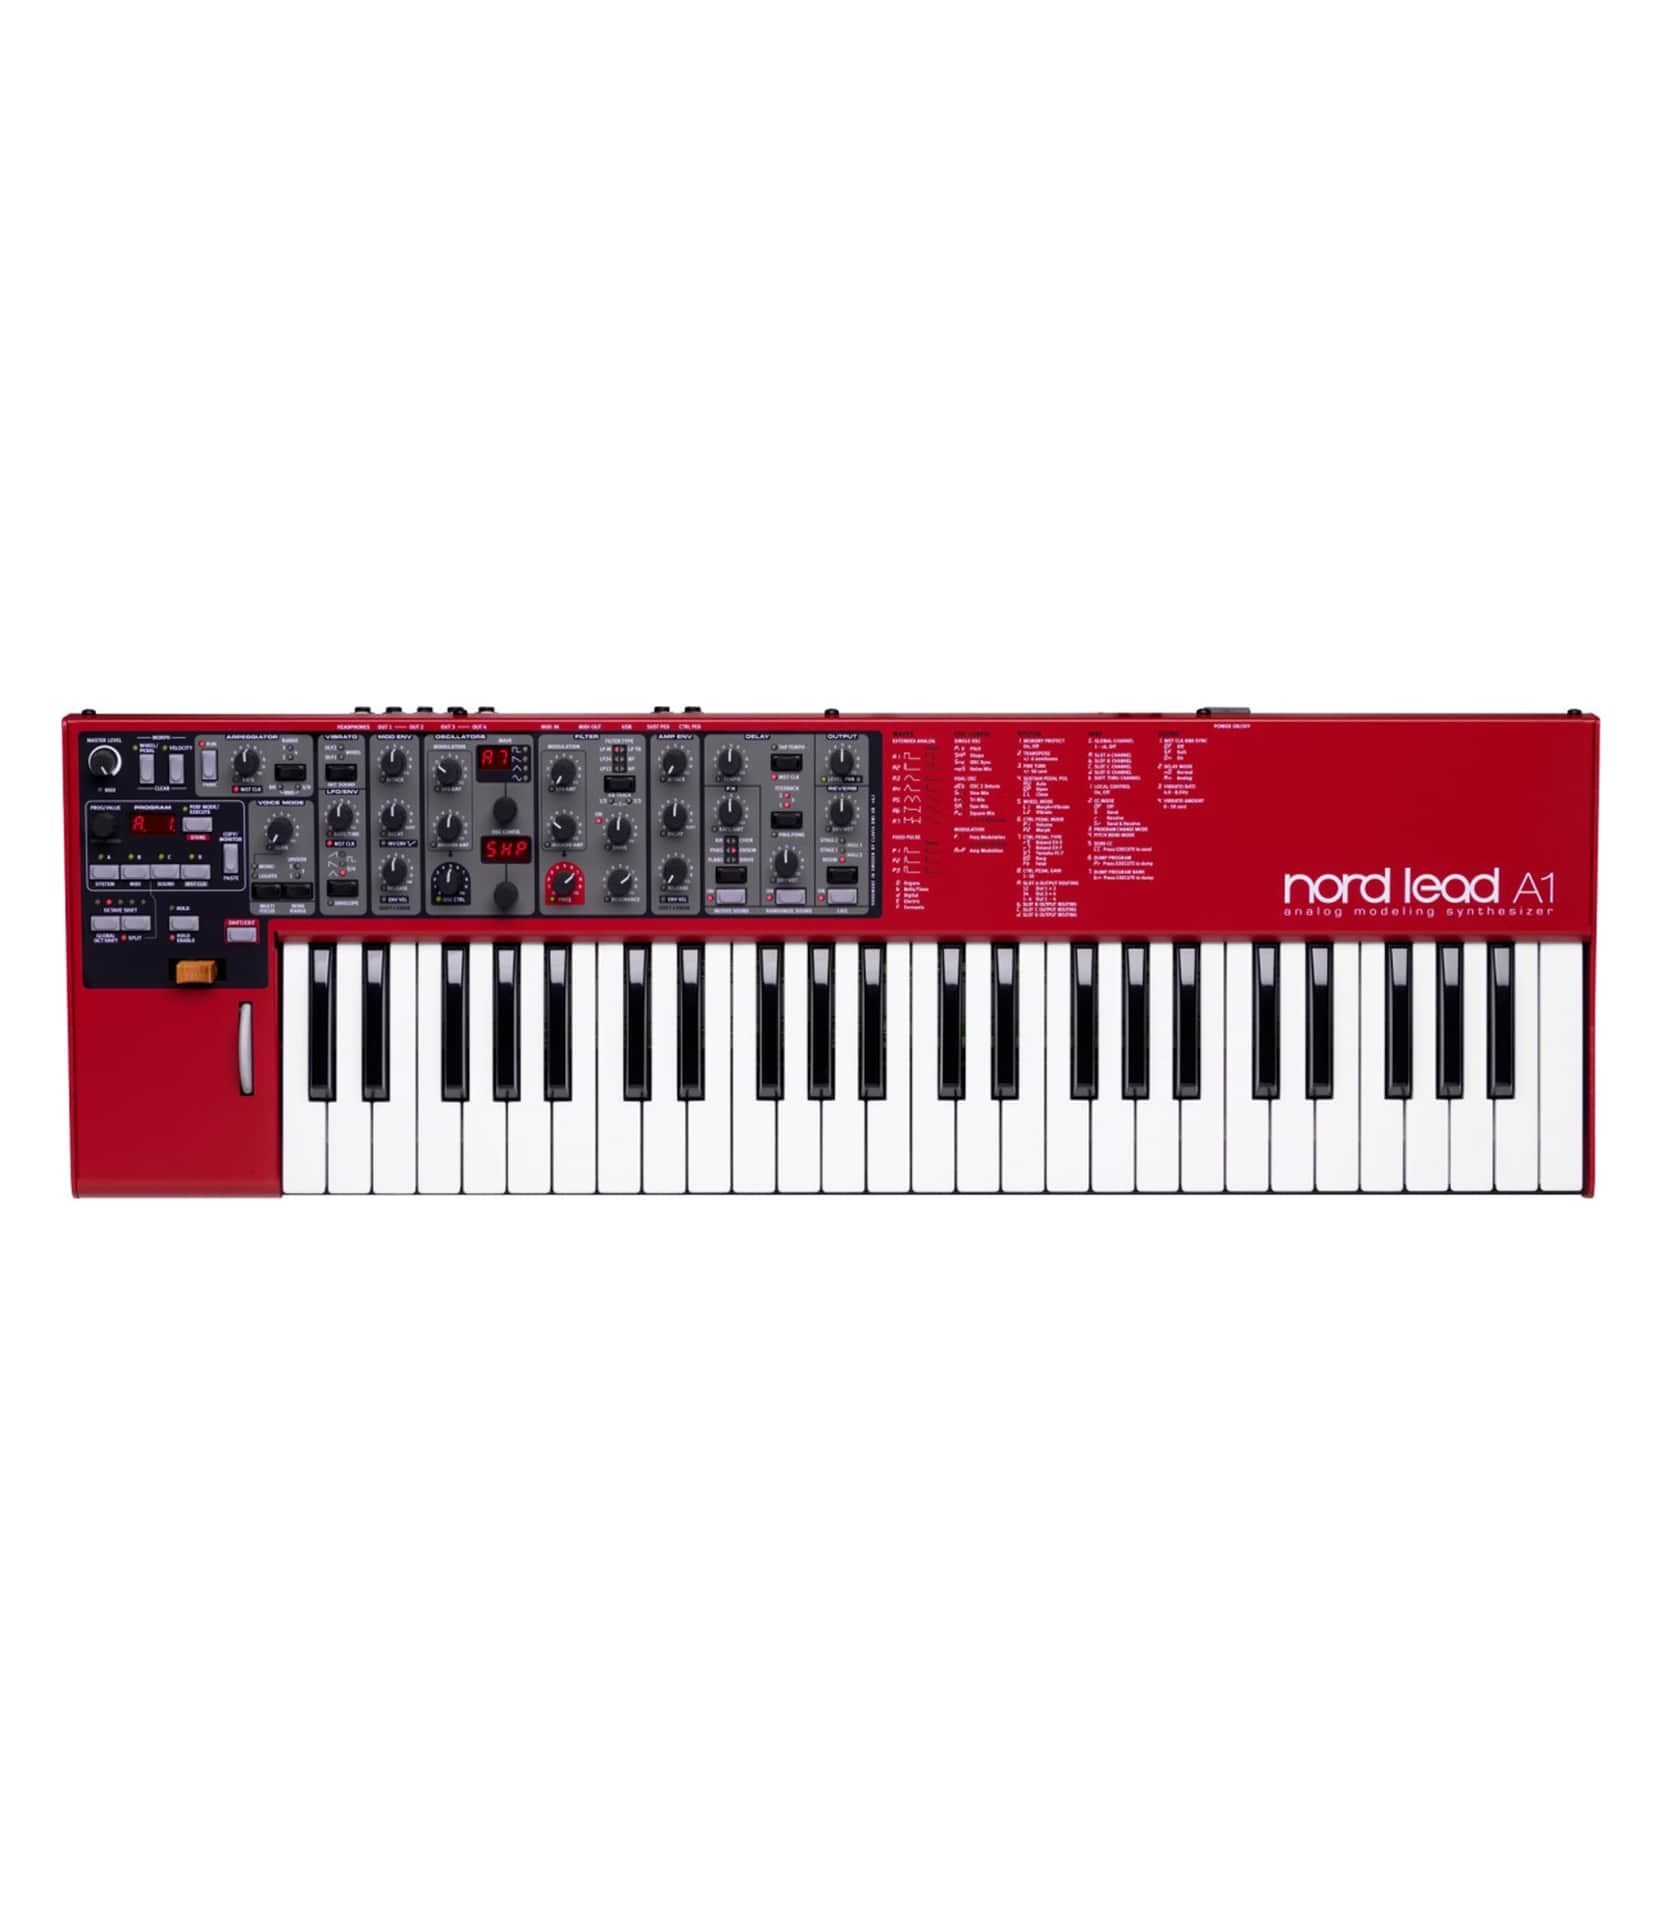 Buy nord Lead A1 Analog Modeling Synthesizer Melody House